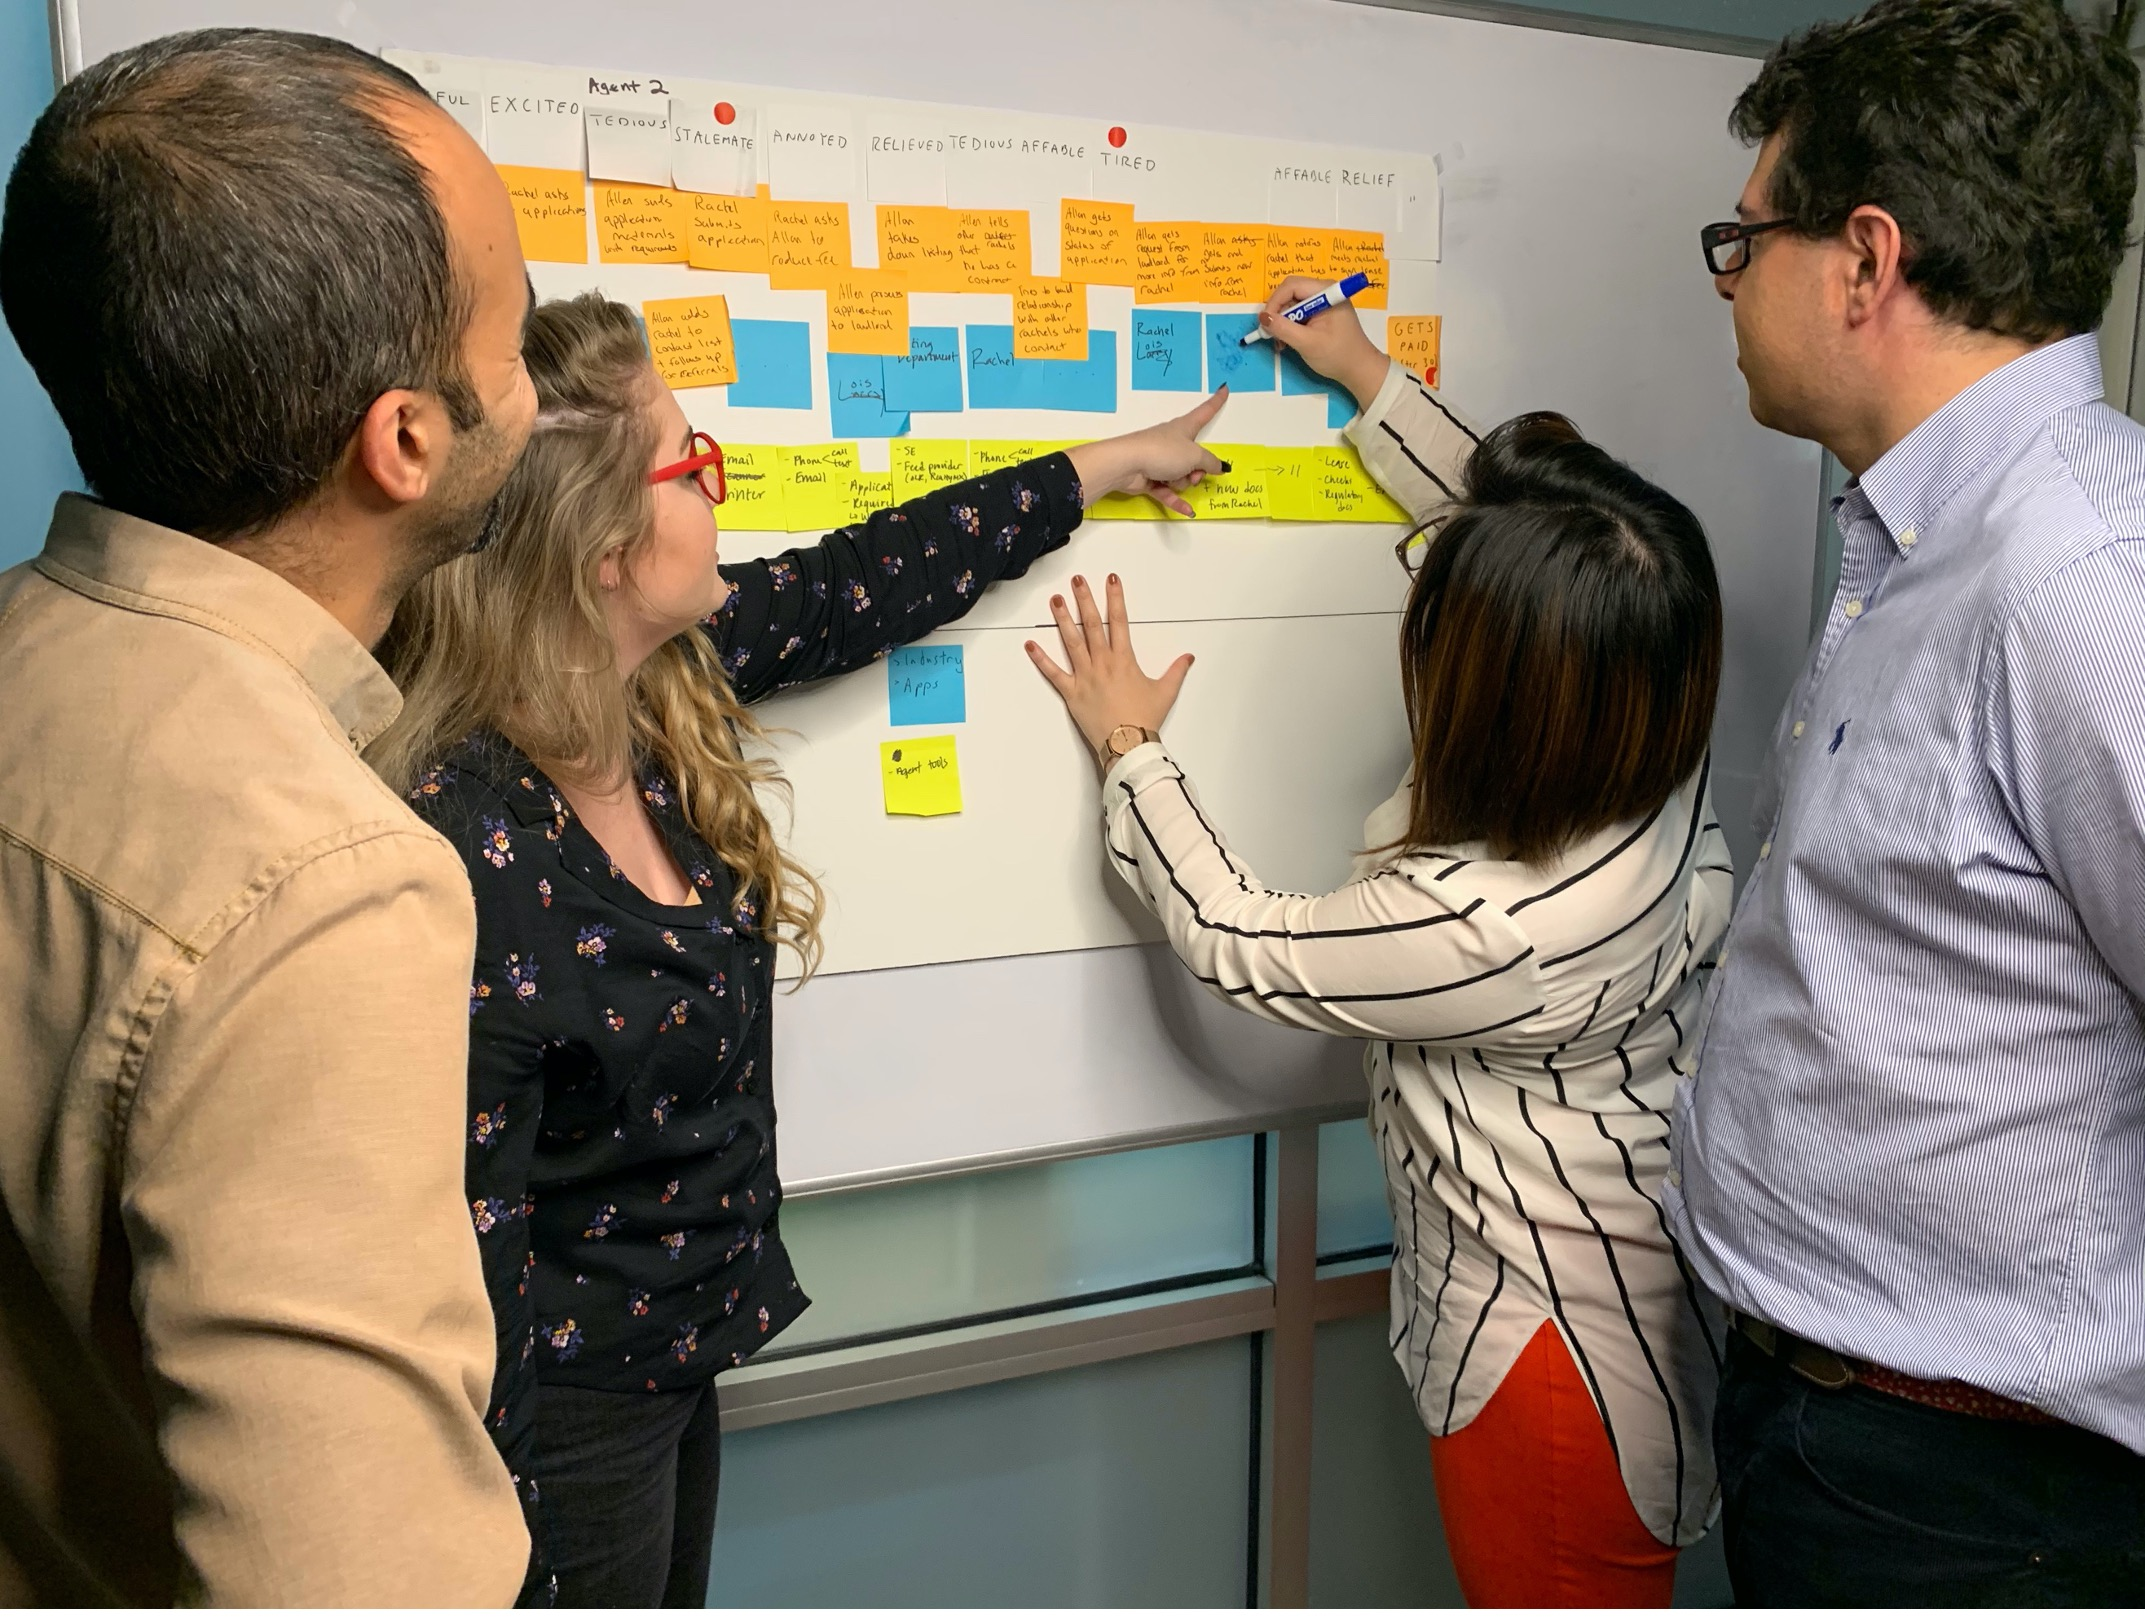 Getting Started With Customer Journey Mapping